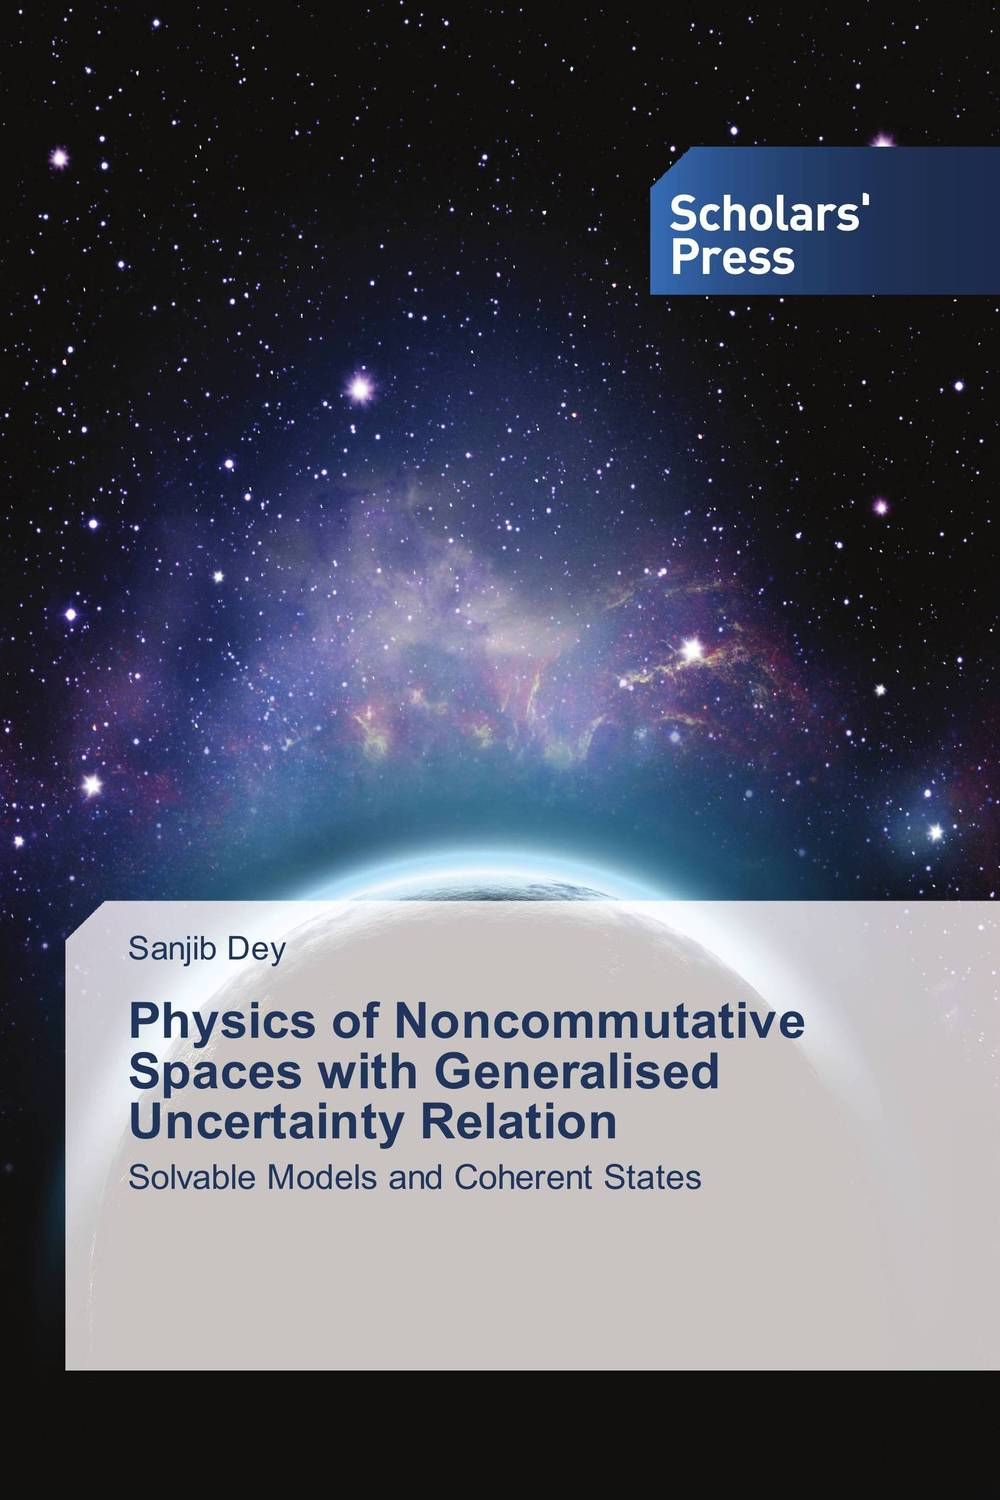 Physics of Noncommutative Spaces with Generalised Uncertainty Relation igor taganov irreversible time physics